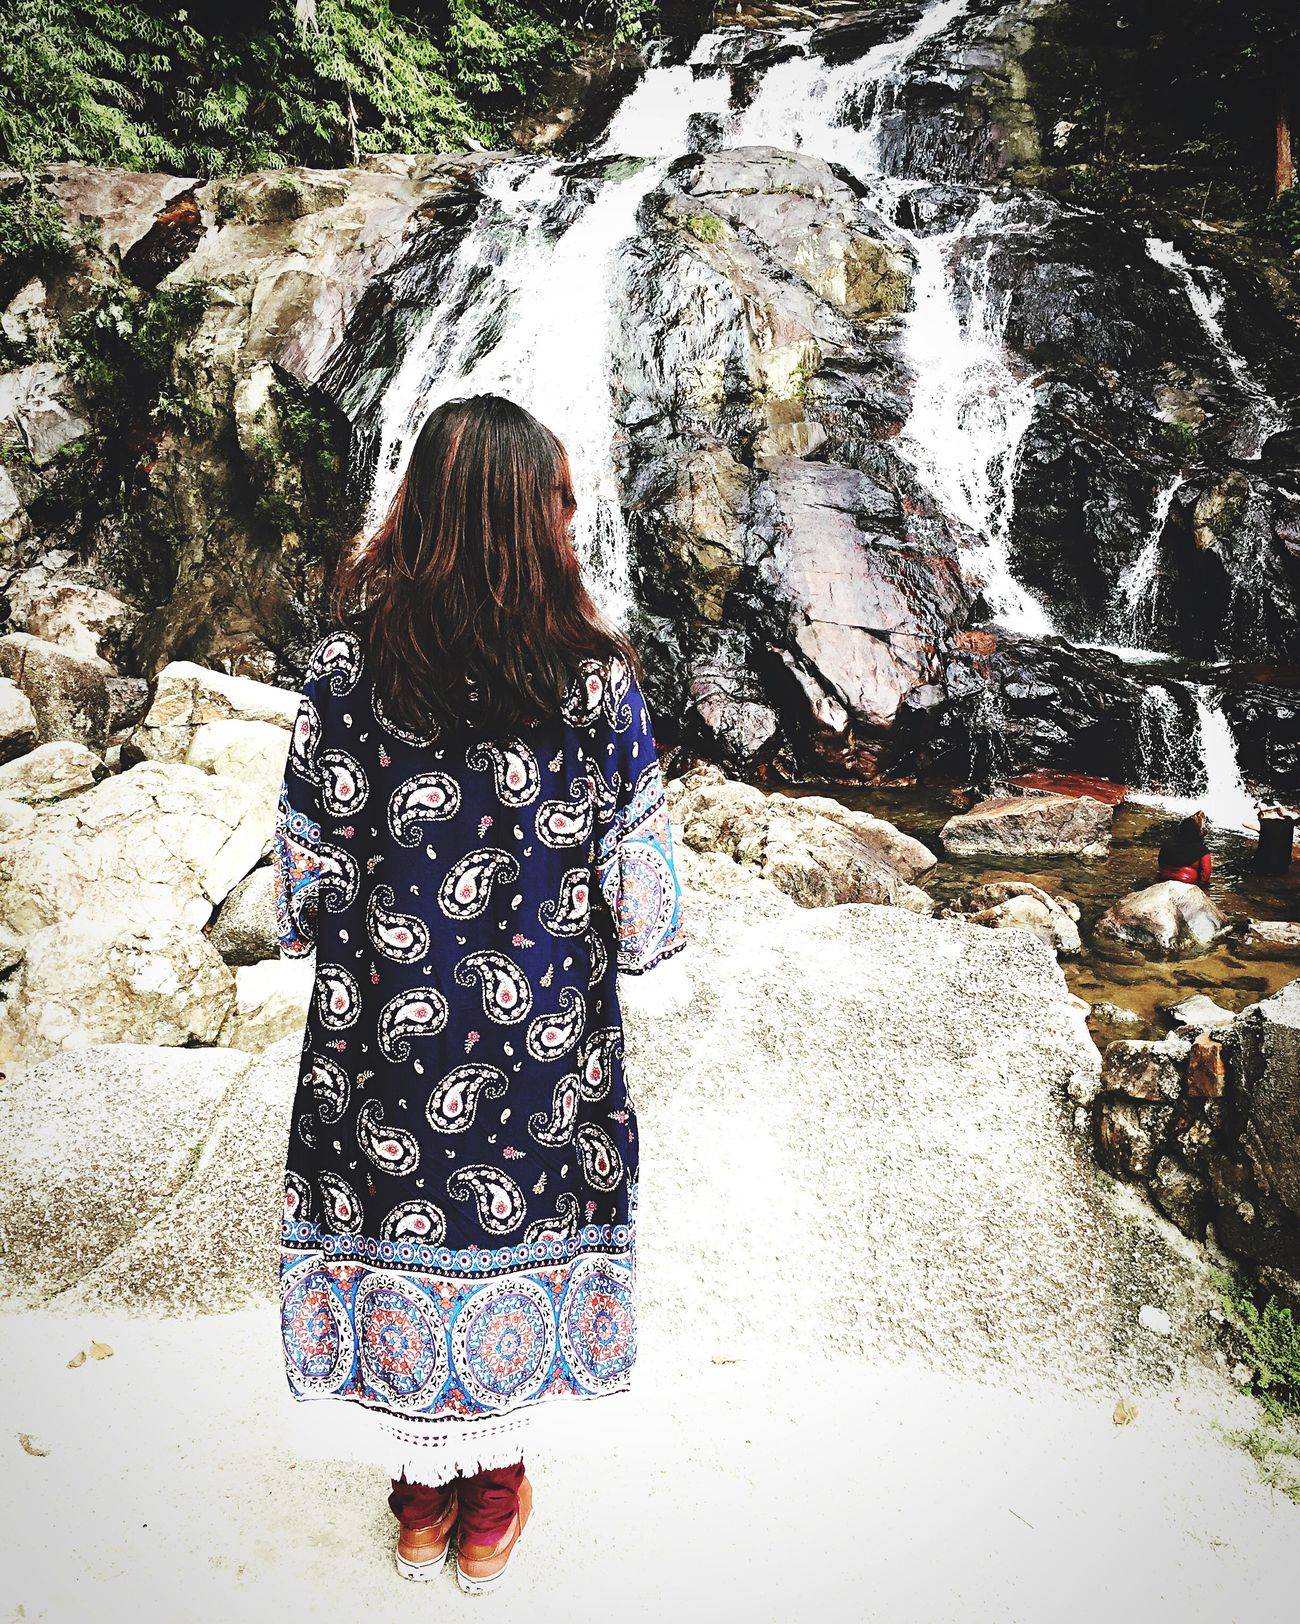 Real People Rear View Long Hair One Person Full Length Outdoors Lifestyles Day Water Nature Beauty In Nature Waterfall People Adult